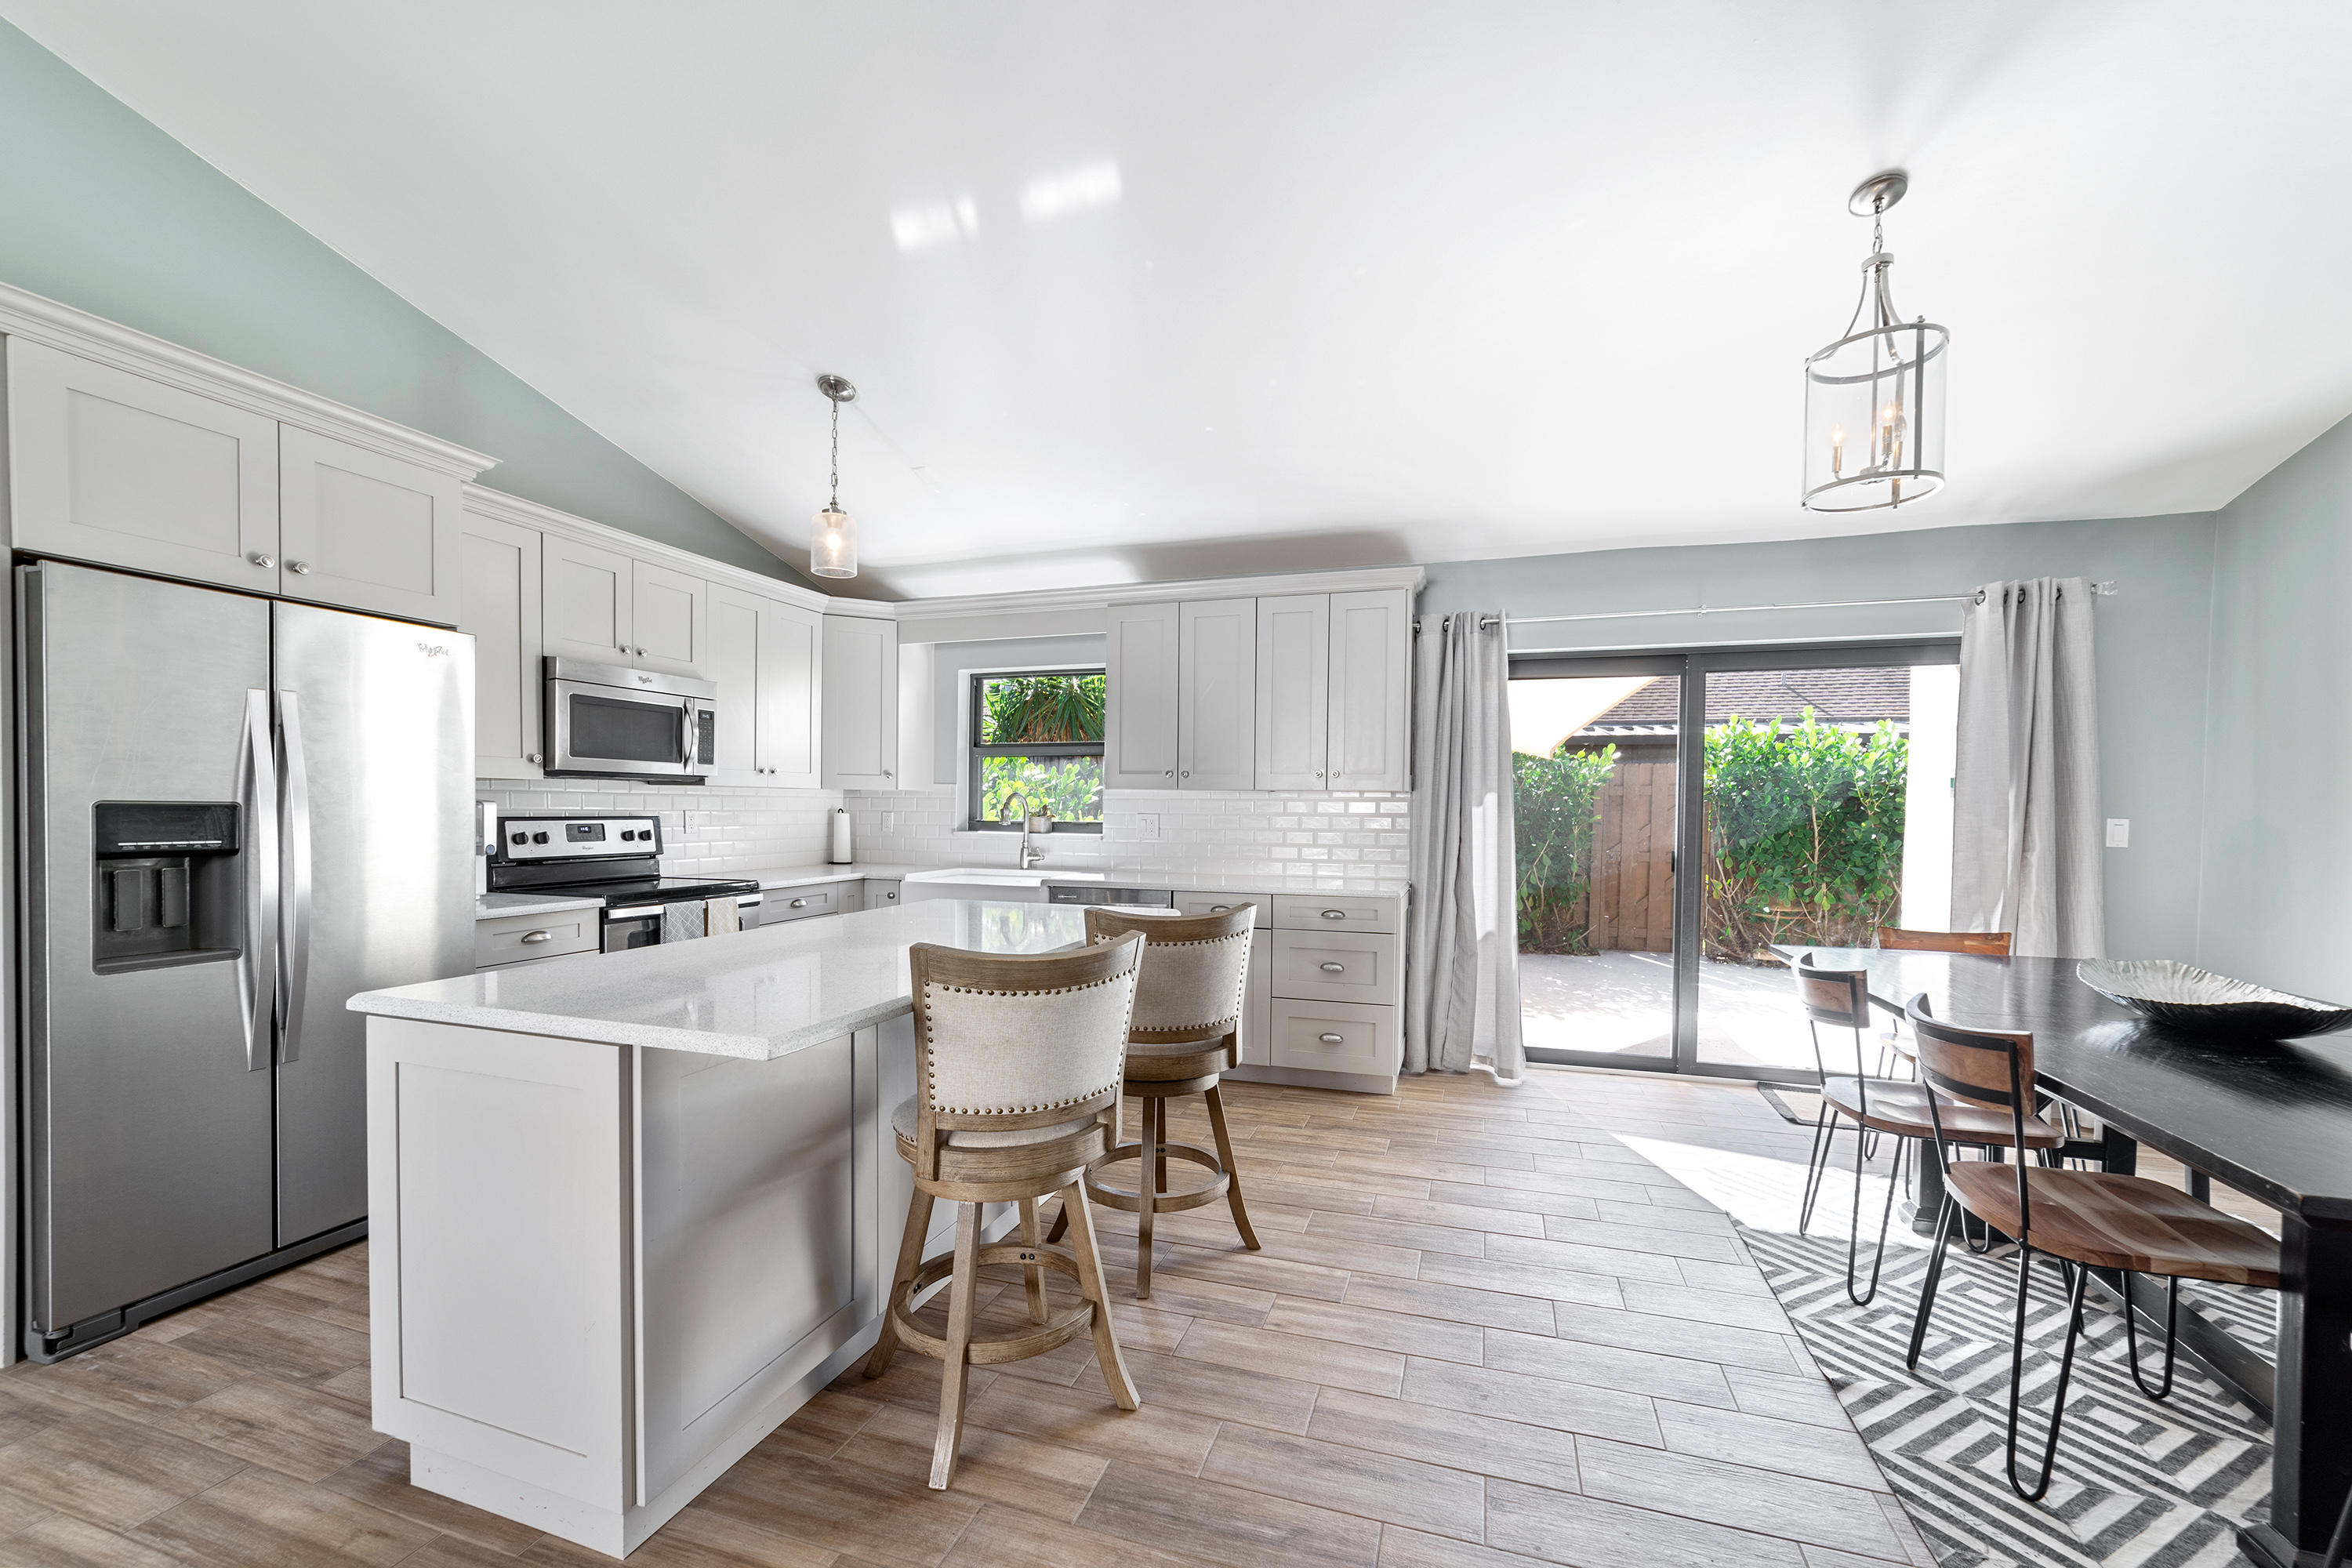 CINNAMON AT WOODBERRY LAKES PALM BEACH GARDENS REAL ESTATE